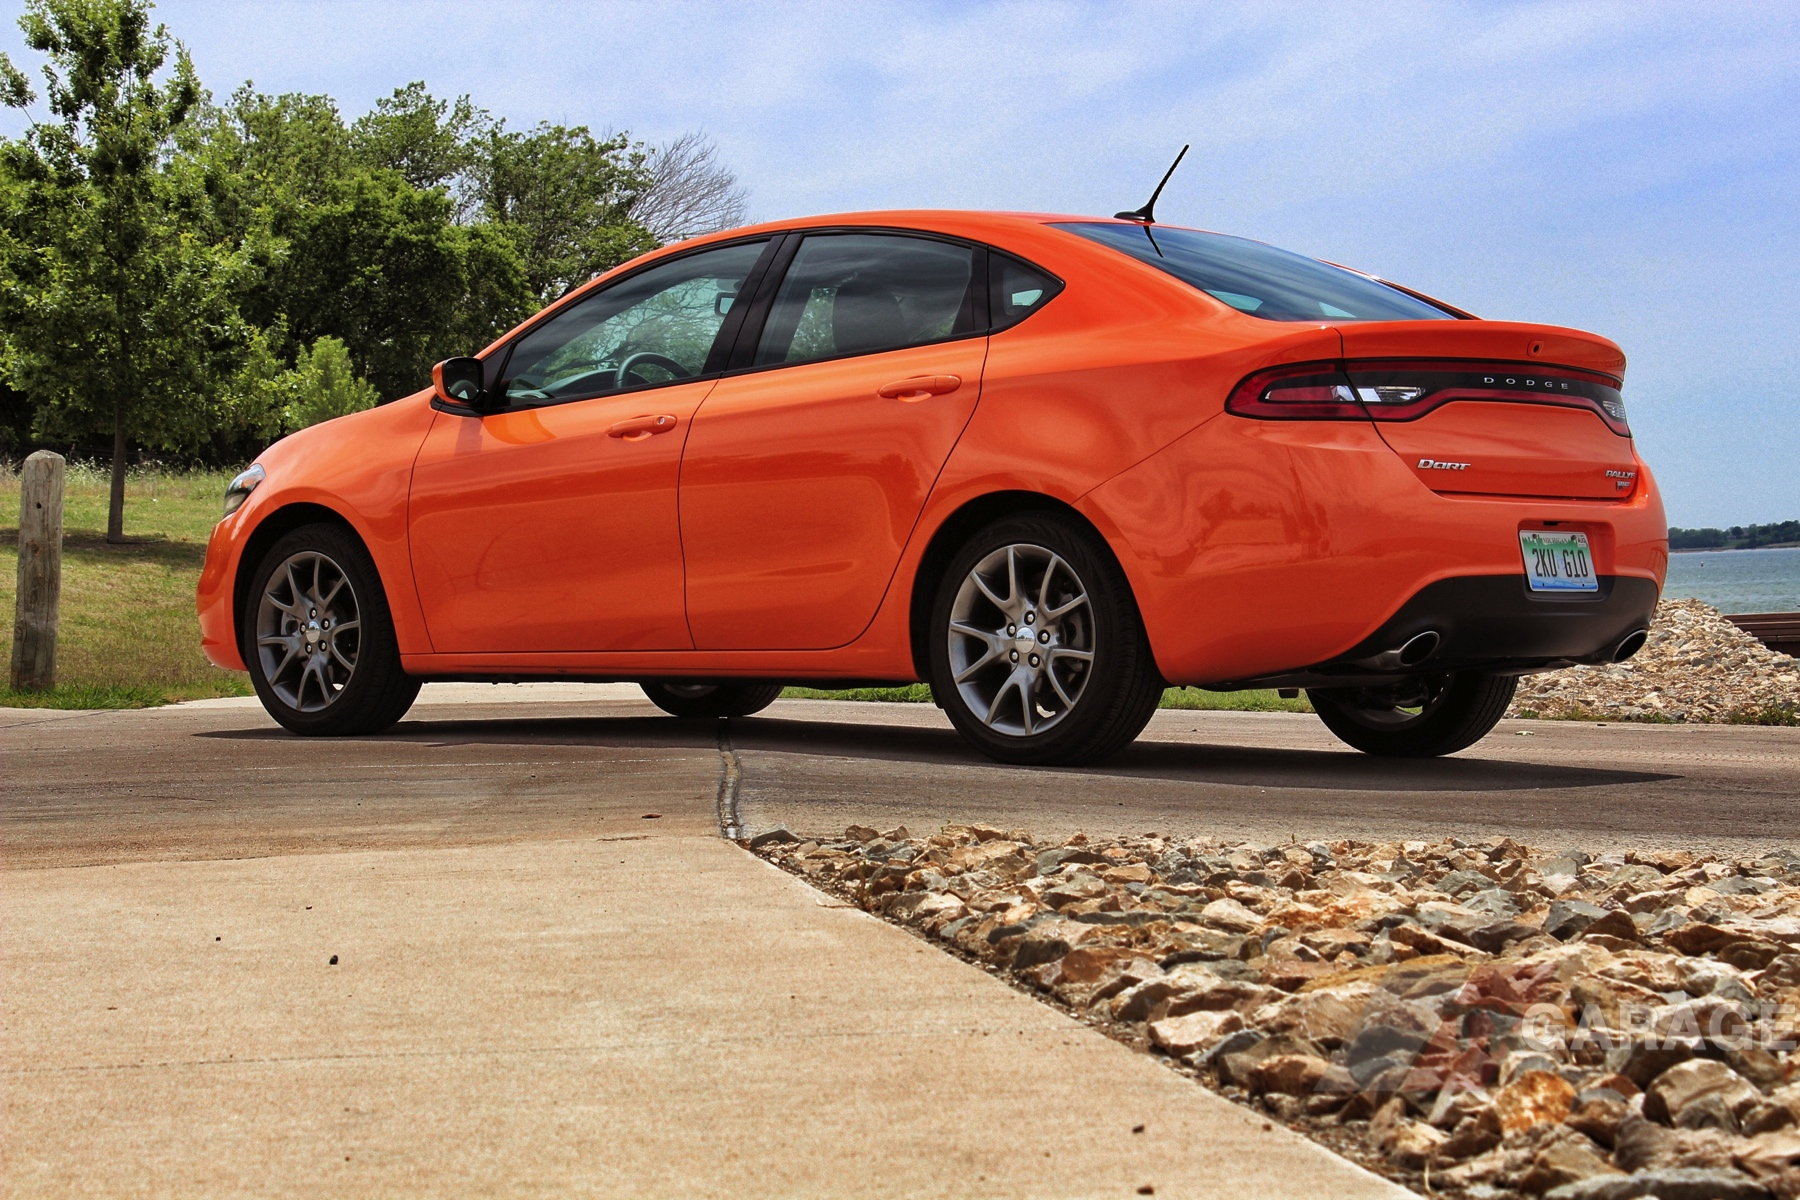 2013 dodge dart rallye 024 txgarage. Cars Review. Best American Auto & Cars Review